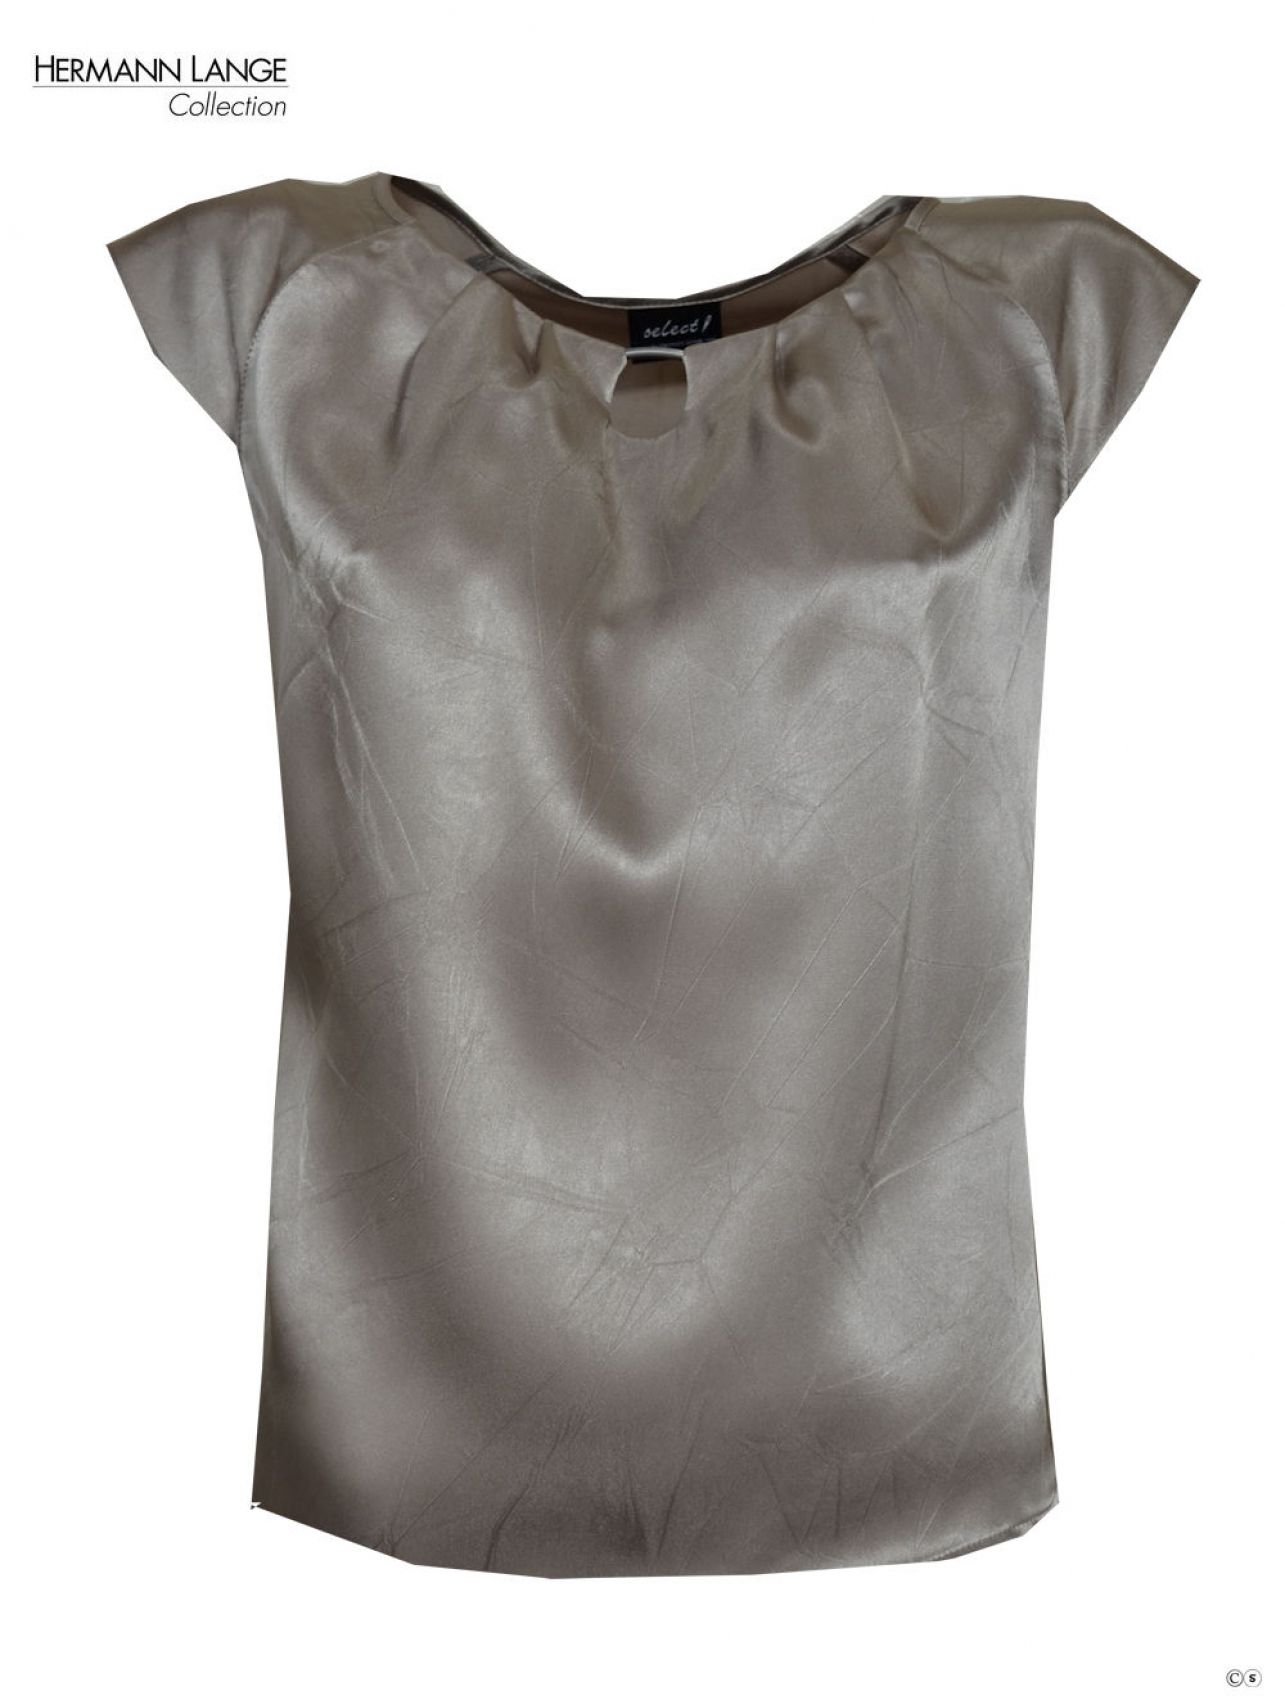 Hermann Lange Top/Blusen-Shirt 6060-1200